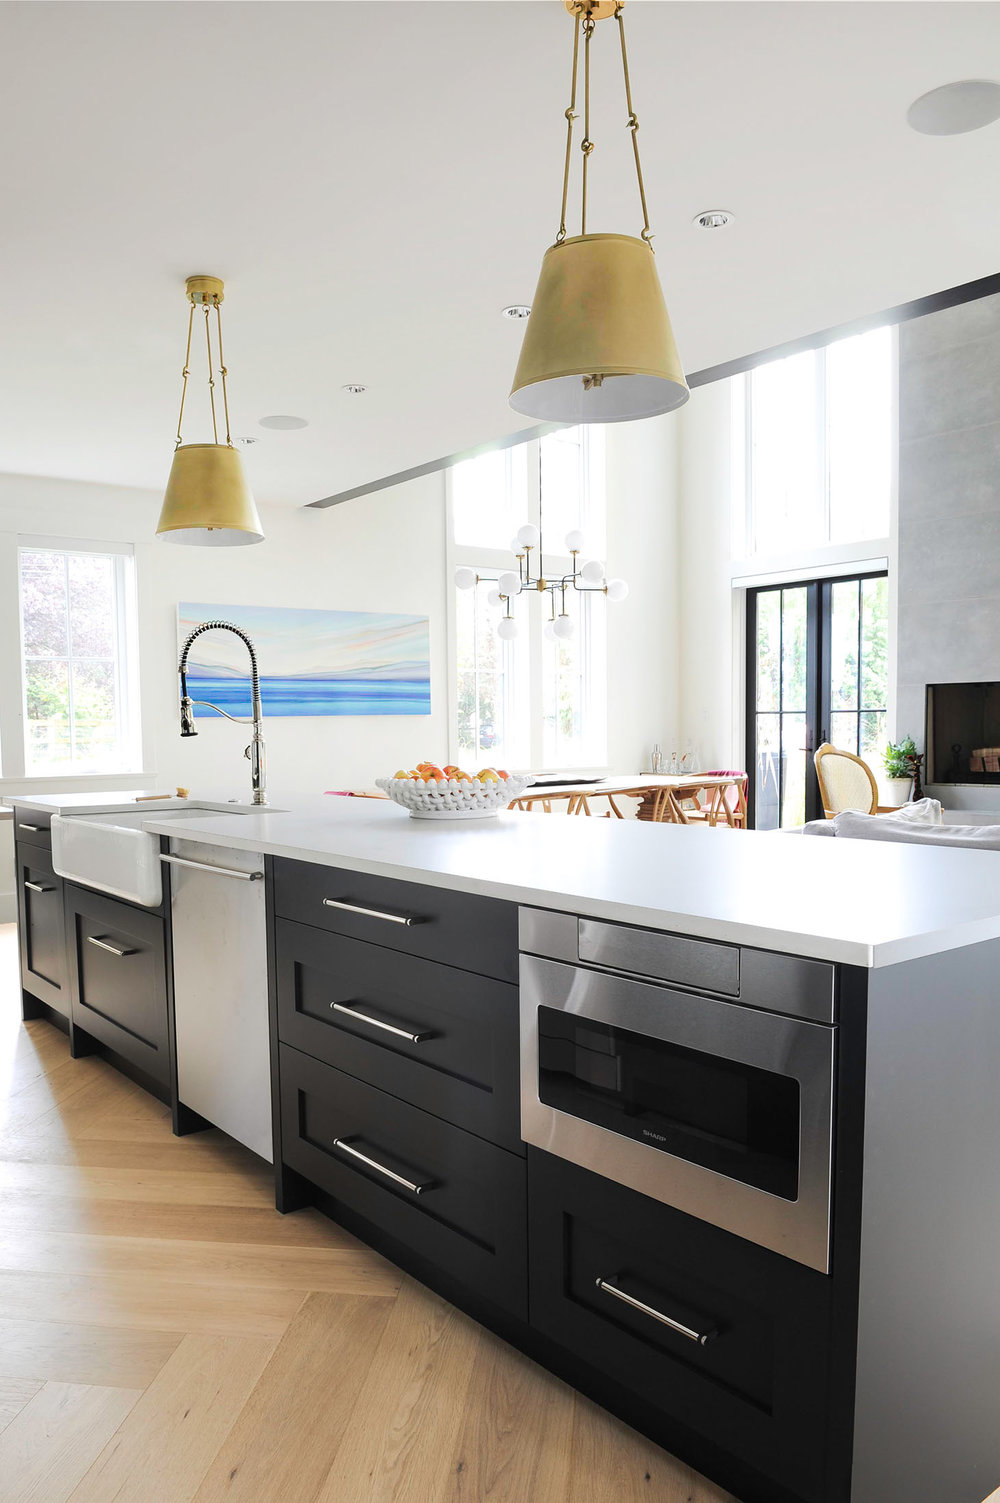 Jillian-Harris-Update-on-Kenny-and-Michelle-Gemmills-Home-Renovation-7.jpg